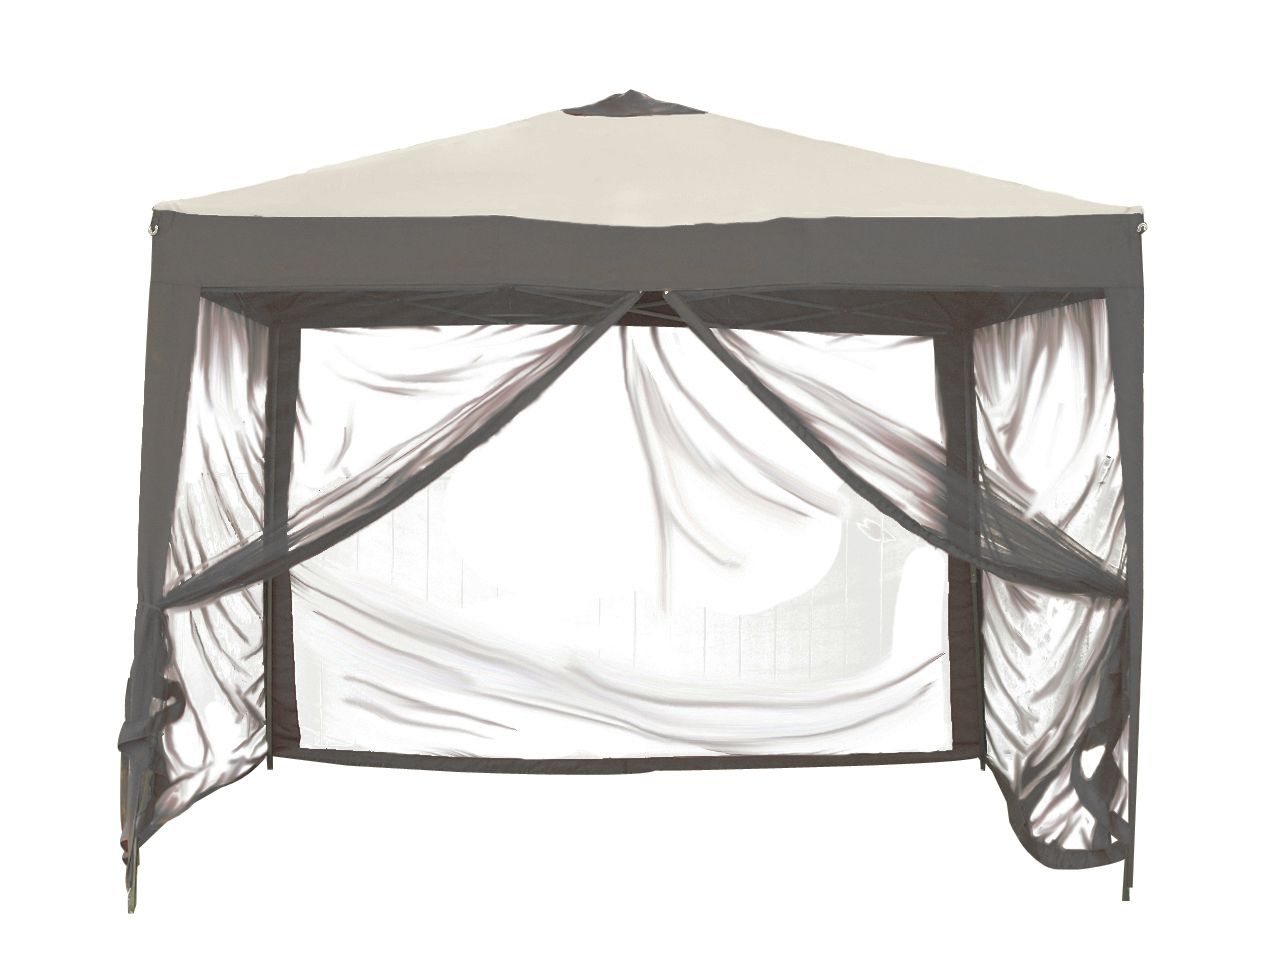 Stow Ez Beige Charcoal Gray Portable 10 X10 Pop Up Canopy Gazebo Netting Bag Gazebo Patio Gazebo Hammock With Canopy